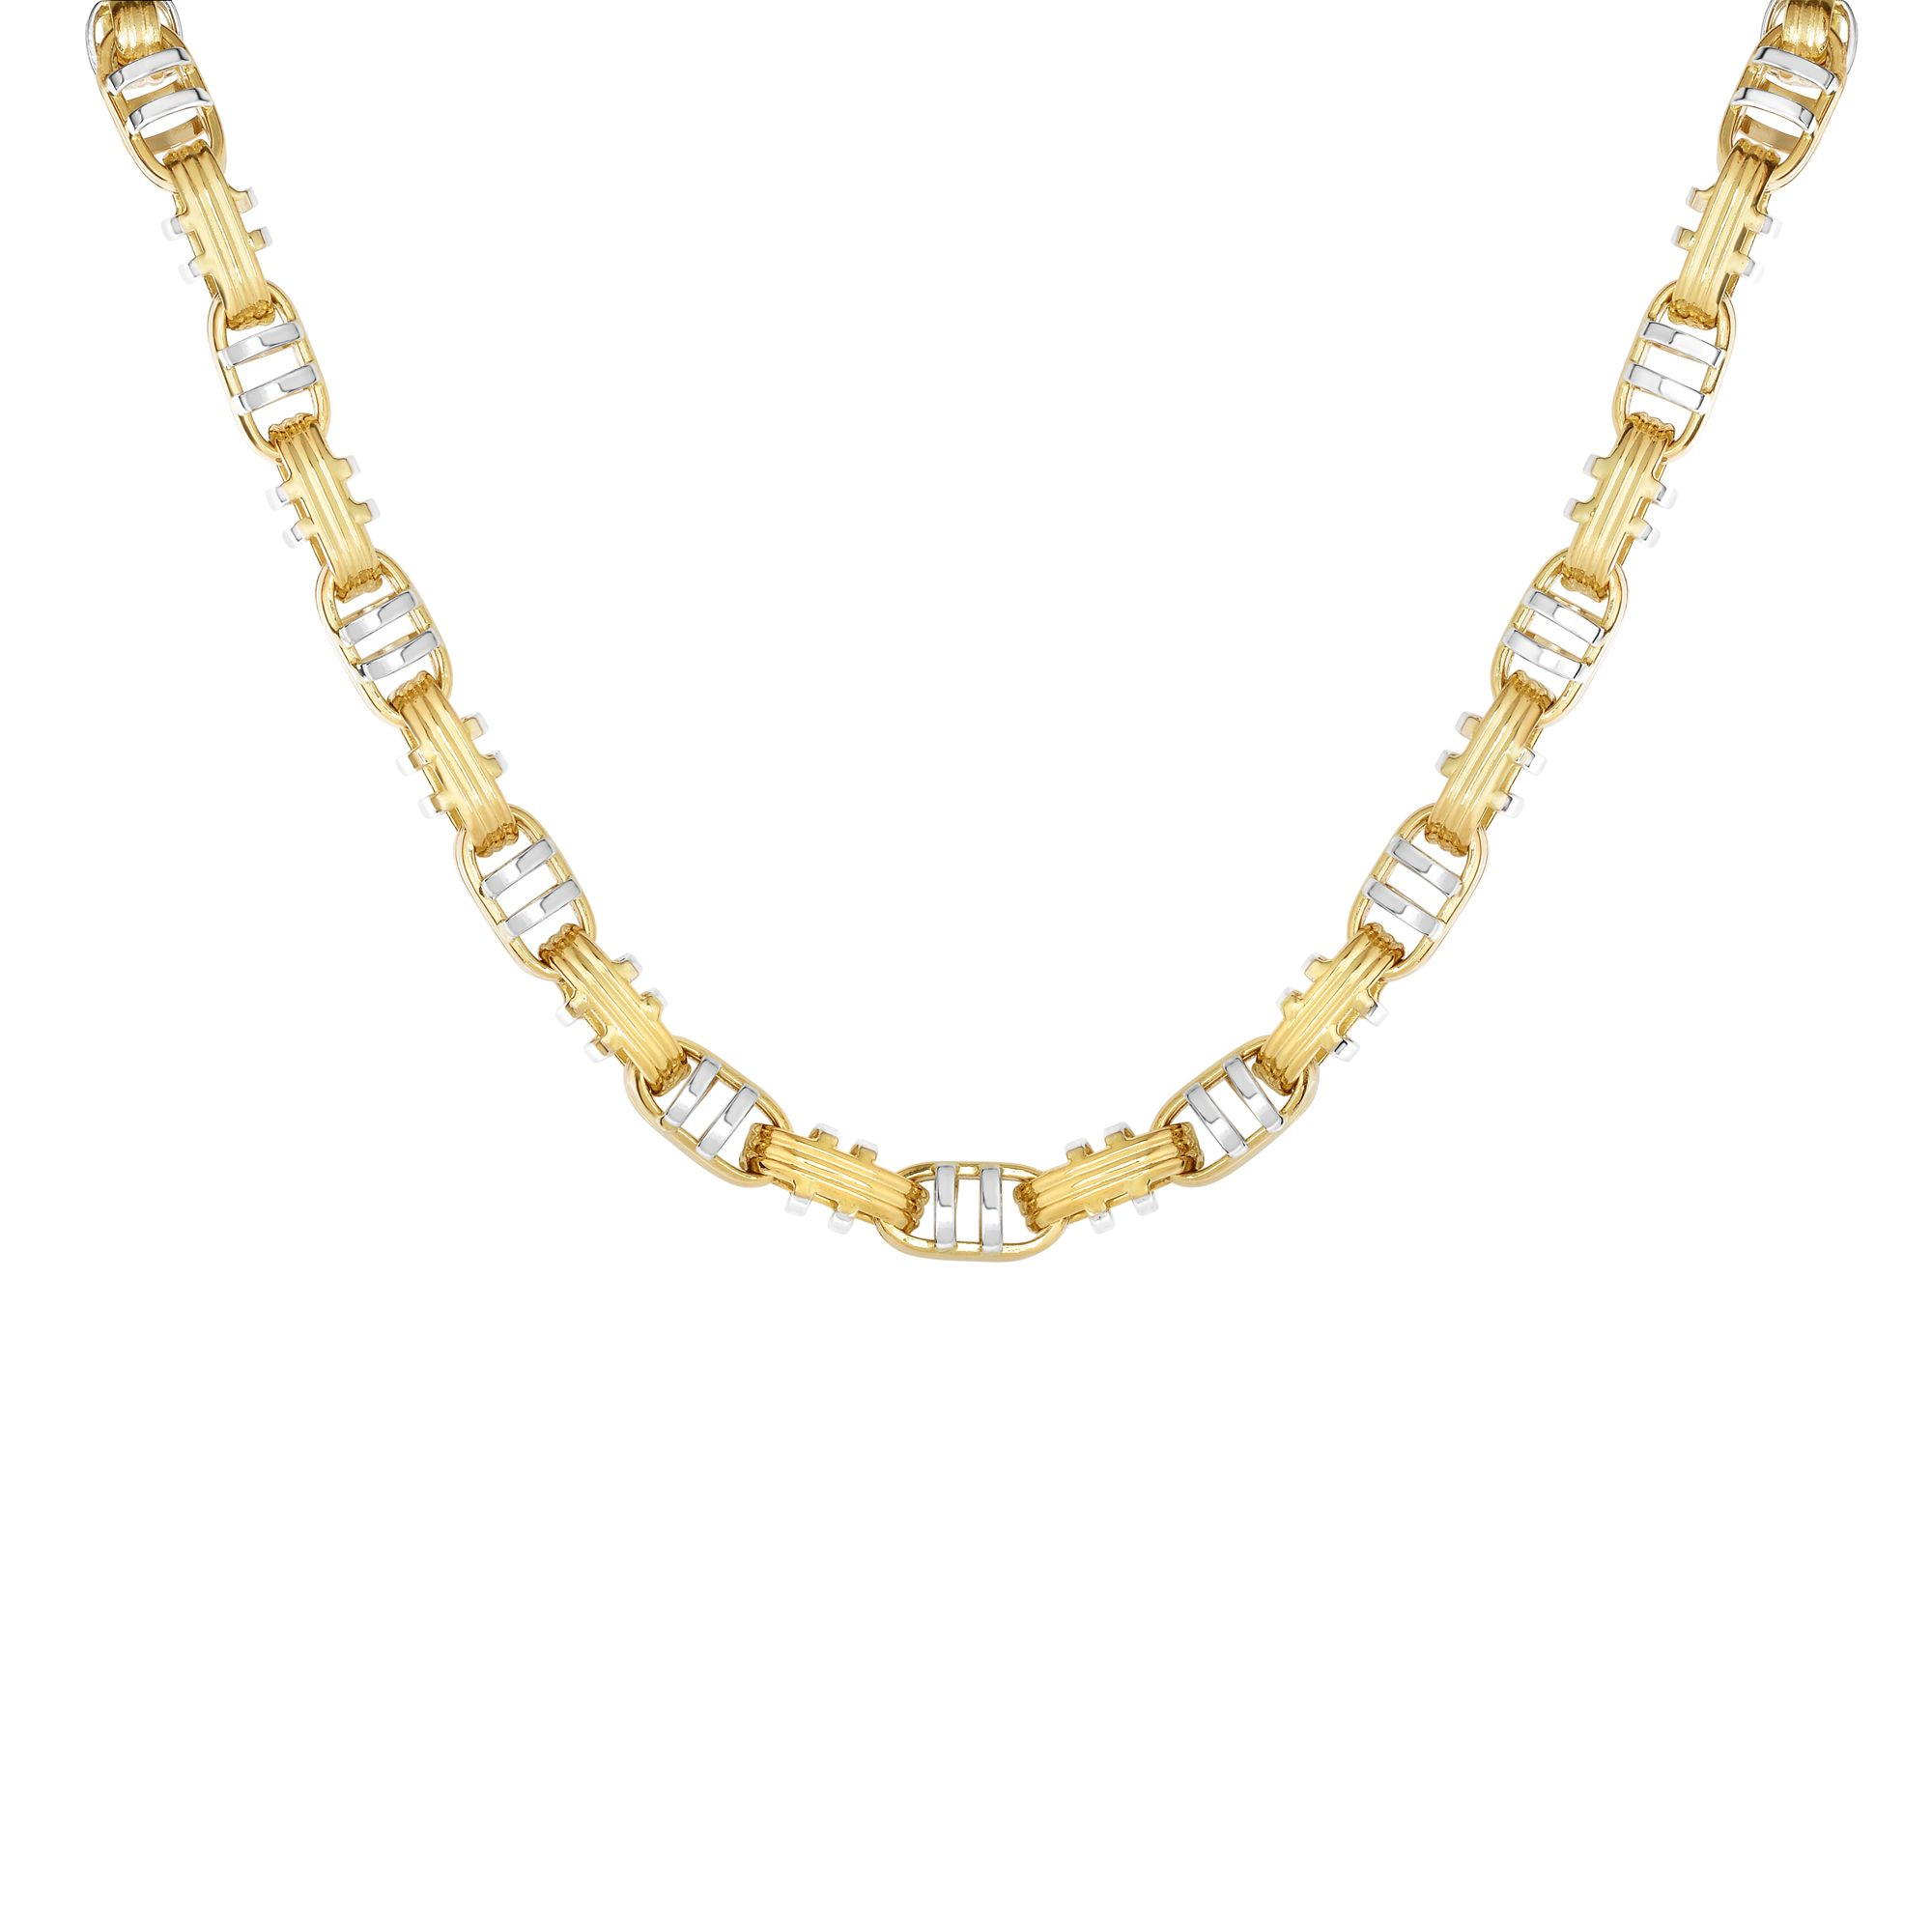 14K Yellow-White Gold Shiny+Ridged Fancy Double Bar Mariner Style Link Necklace with Lobster Clasp by Goldia